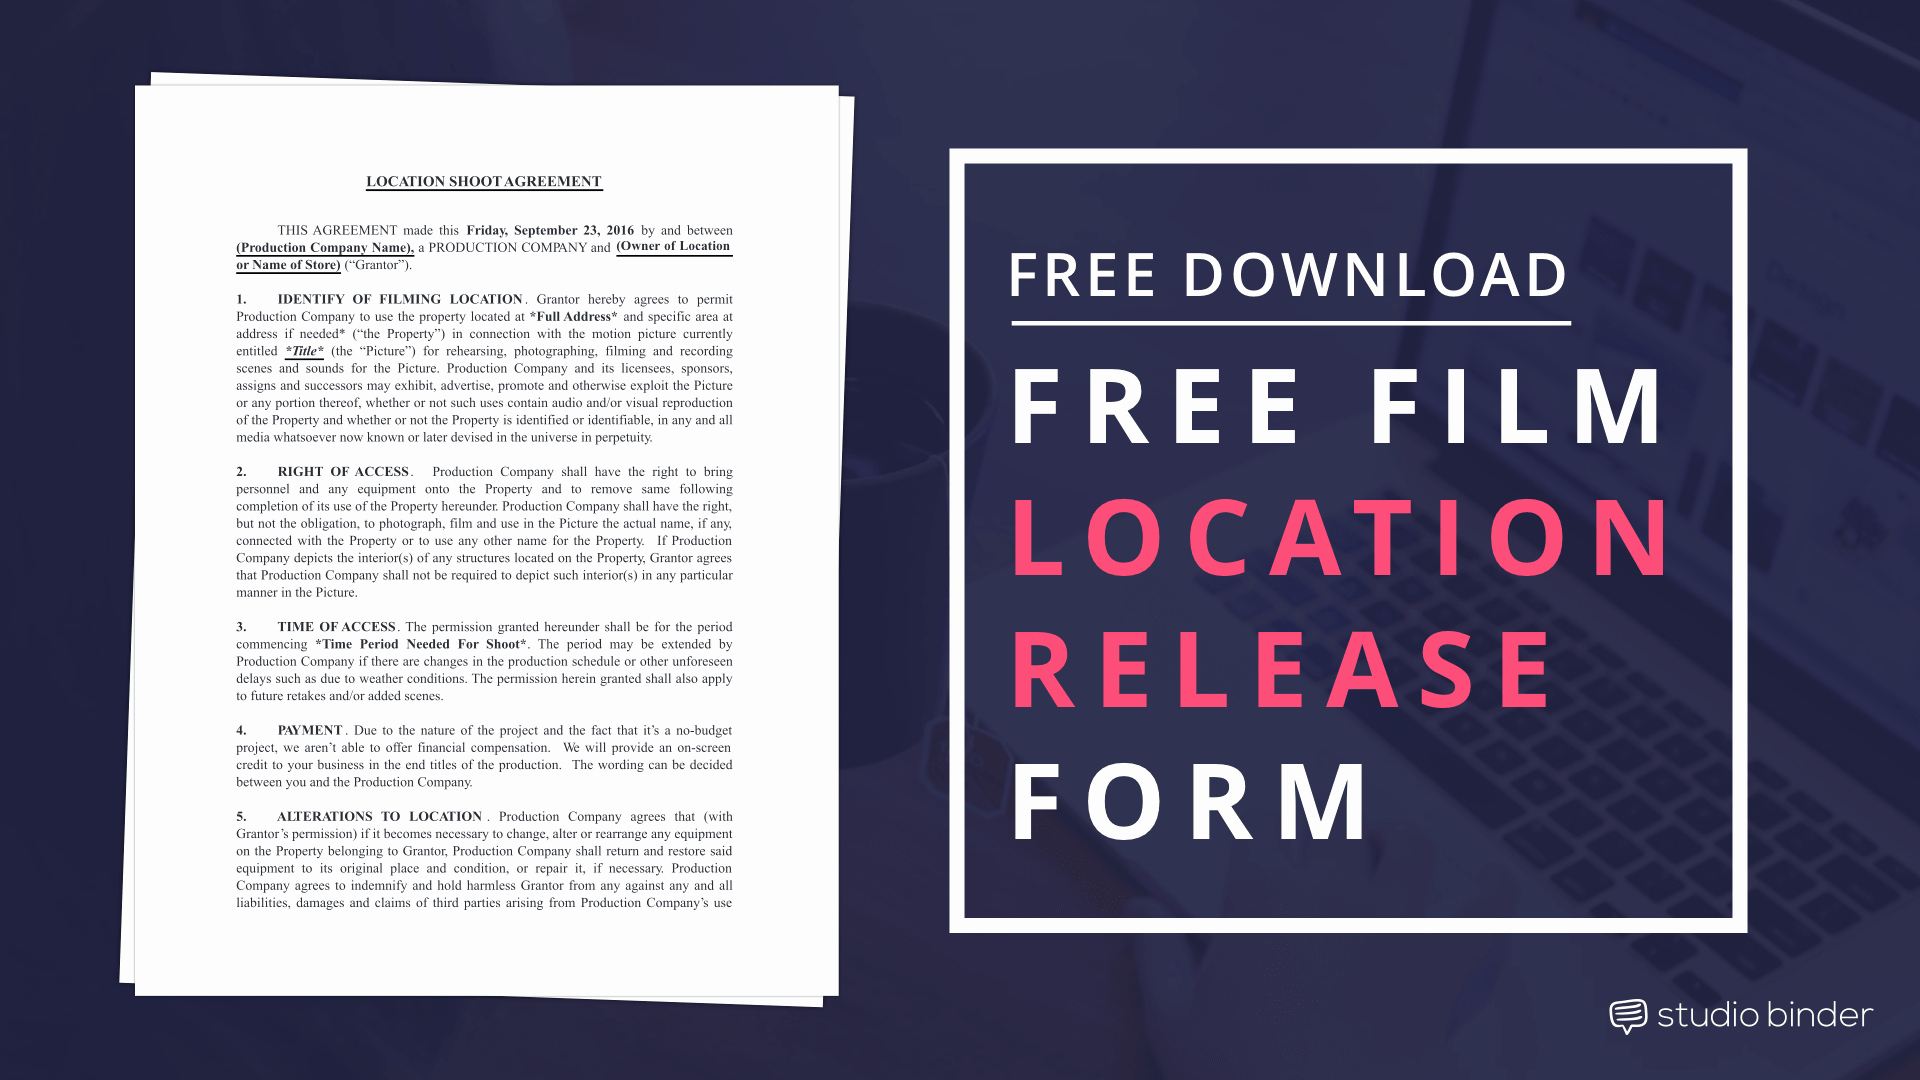 Film Release form Template Luxury Download Your Free Making Production Documents and